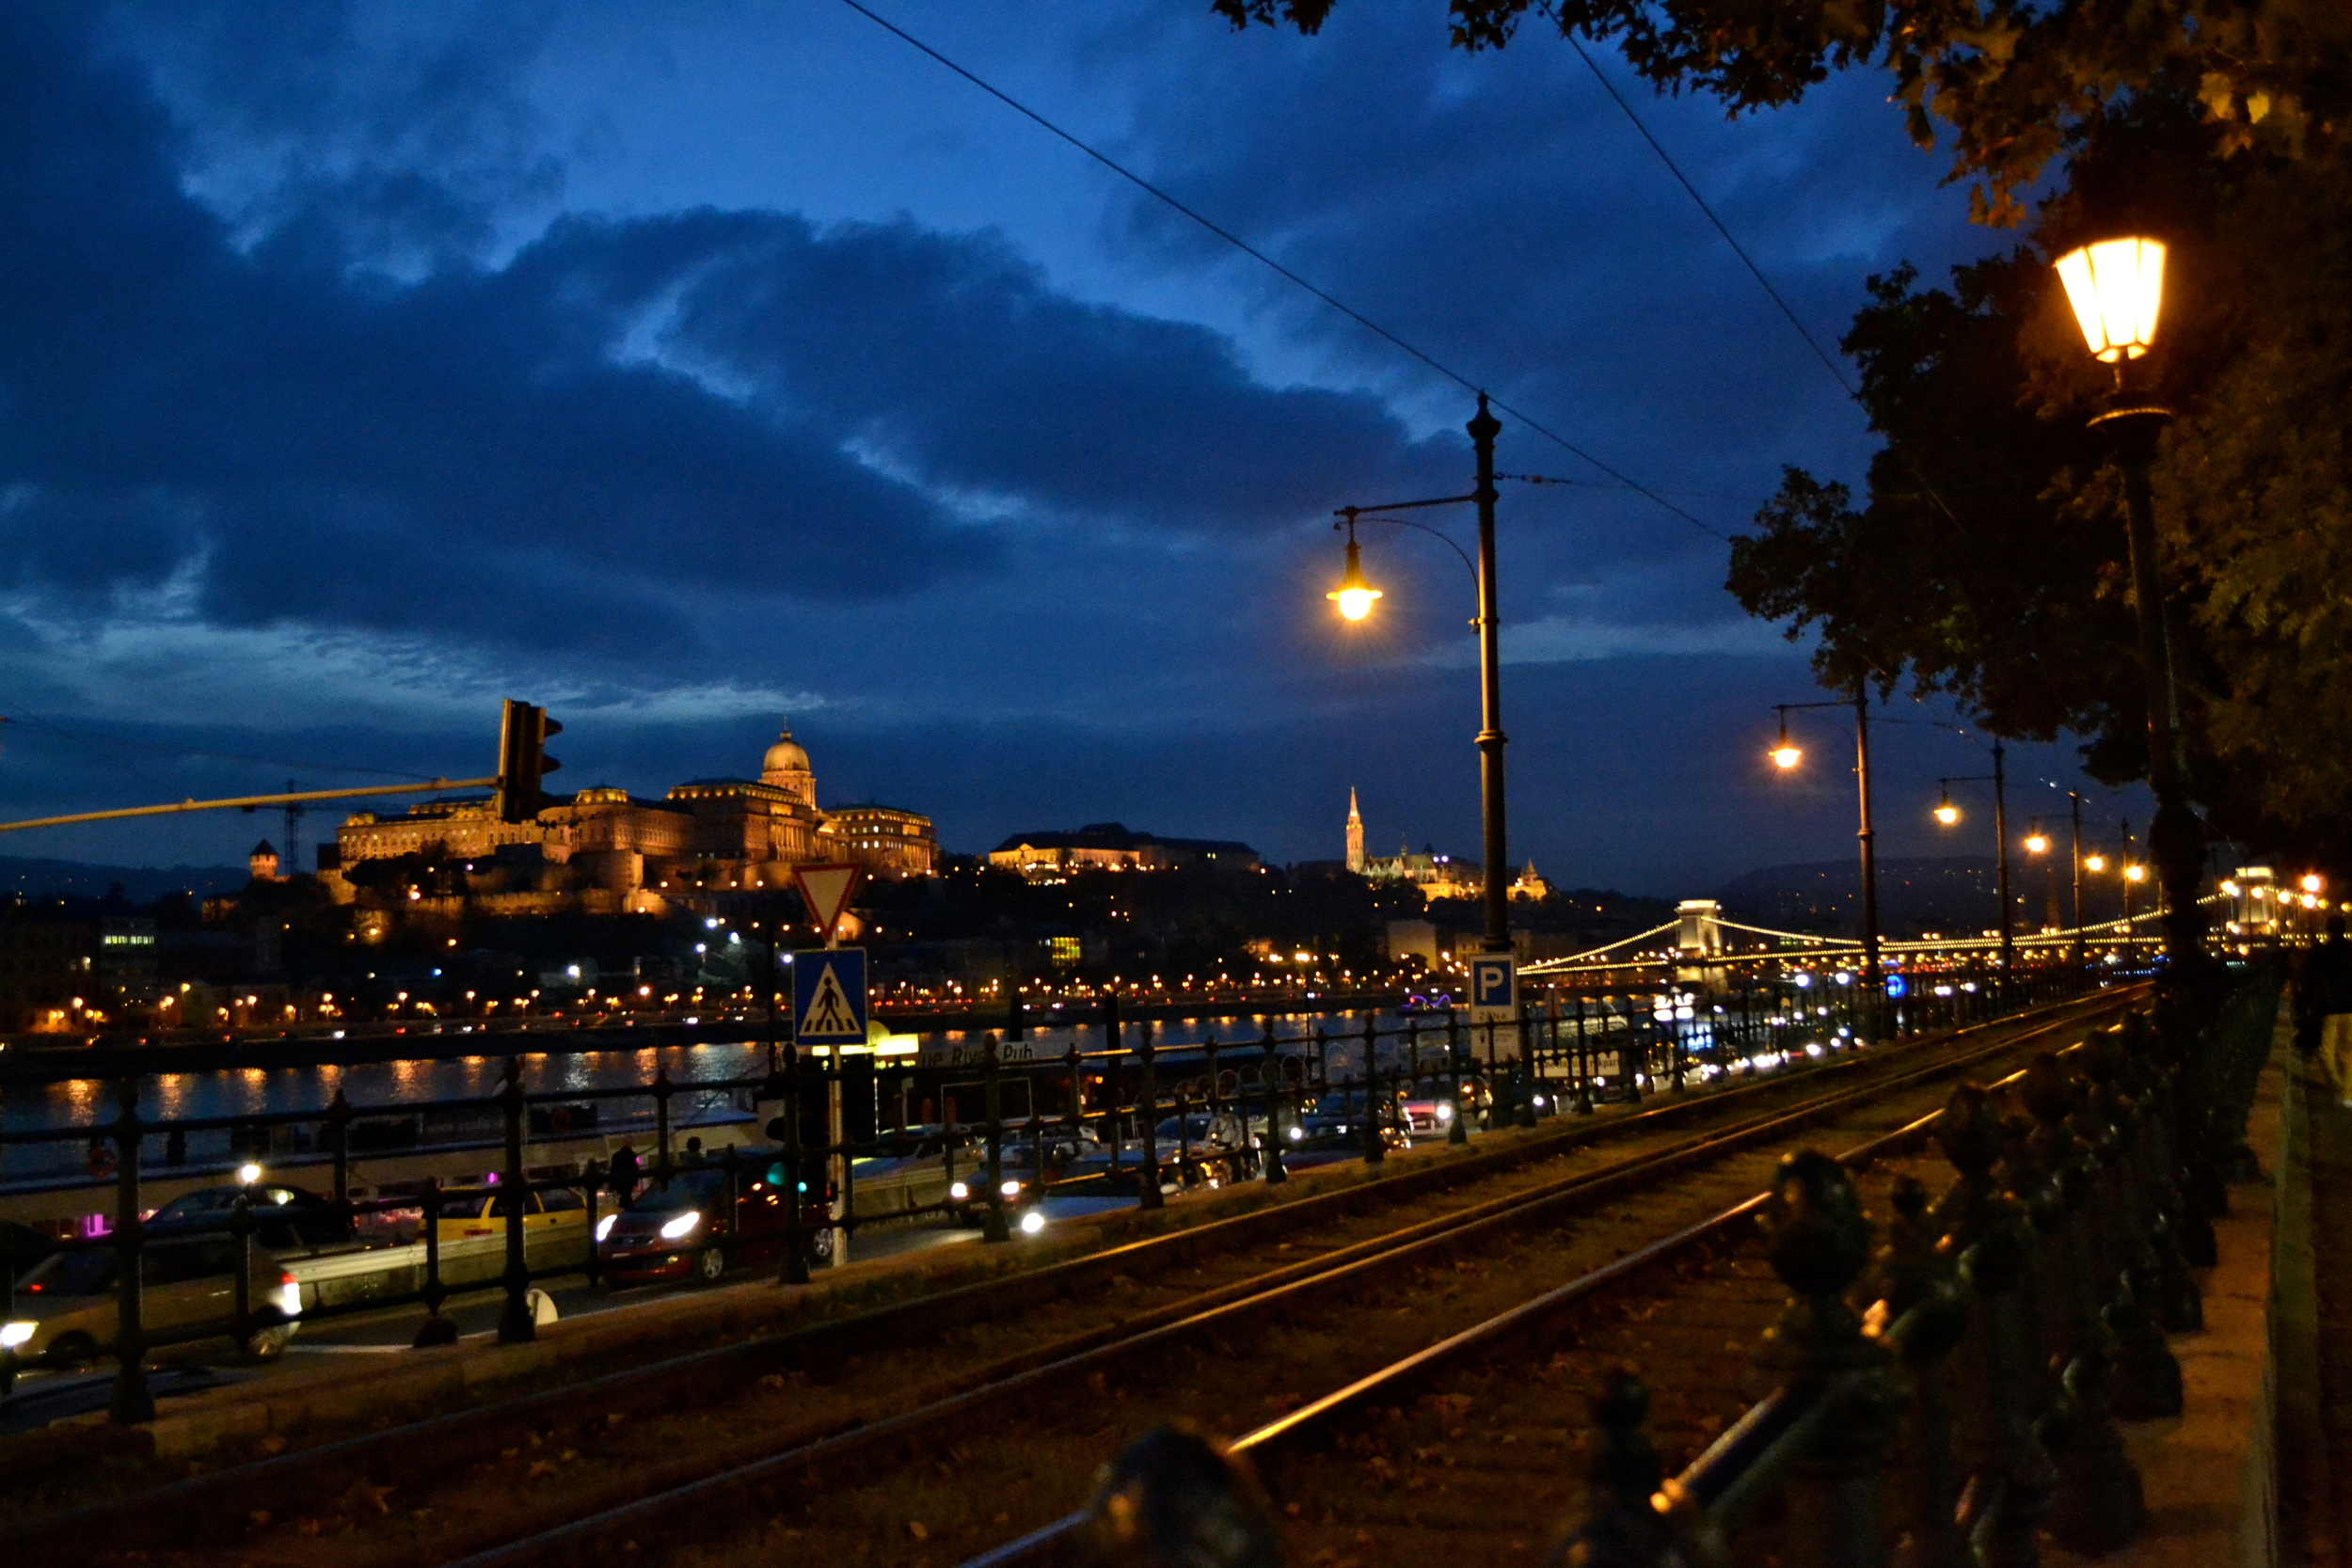 Looking across the Danube to Buda Castle at night.